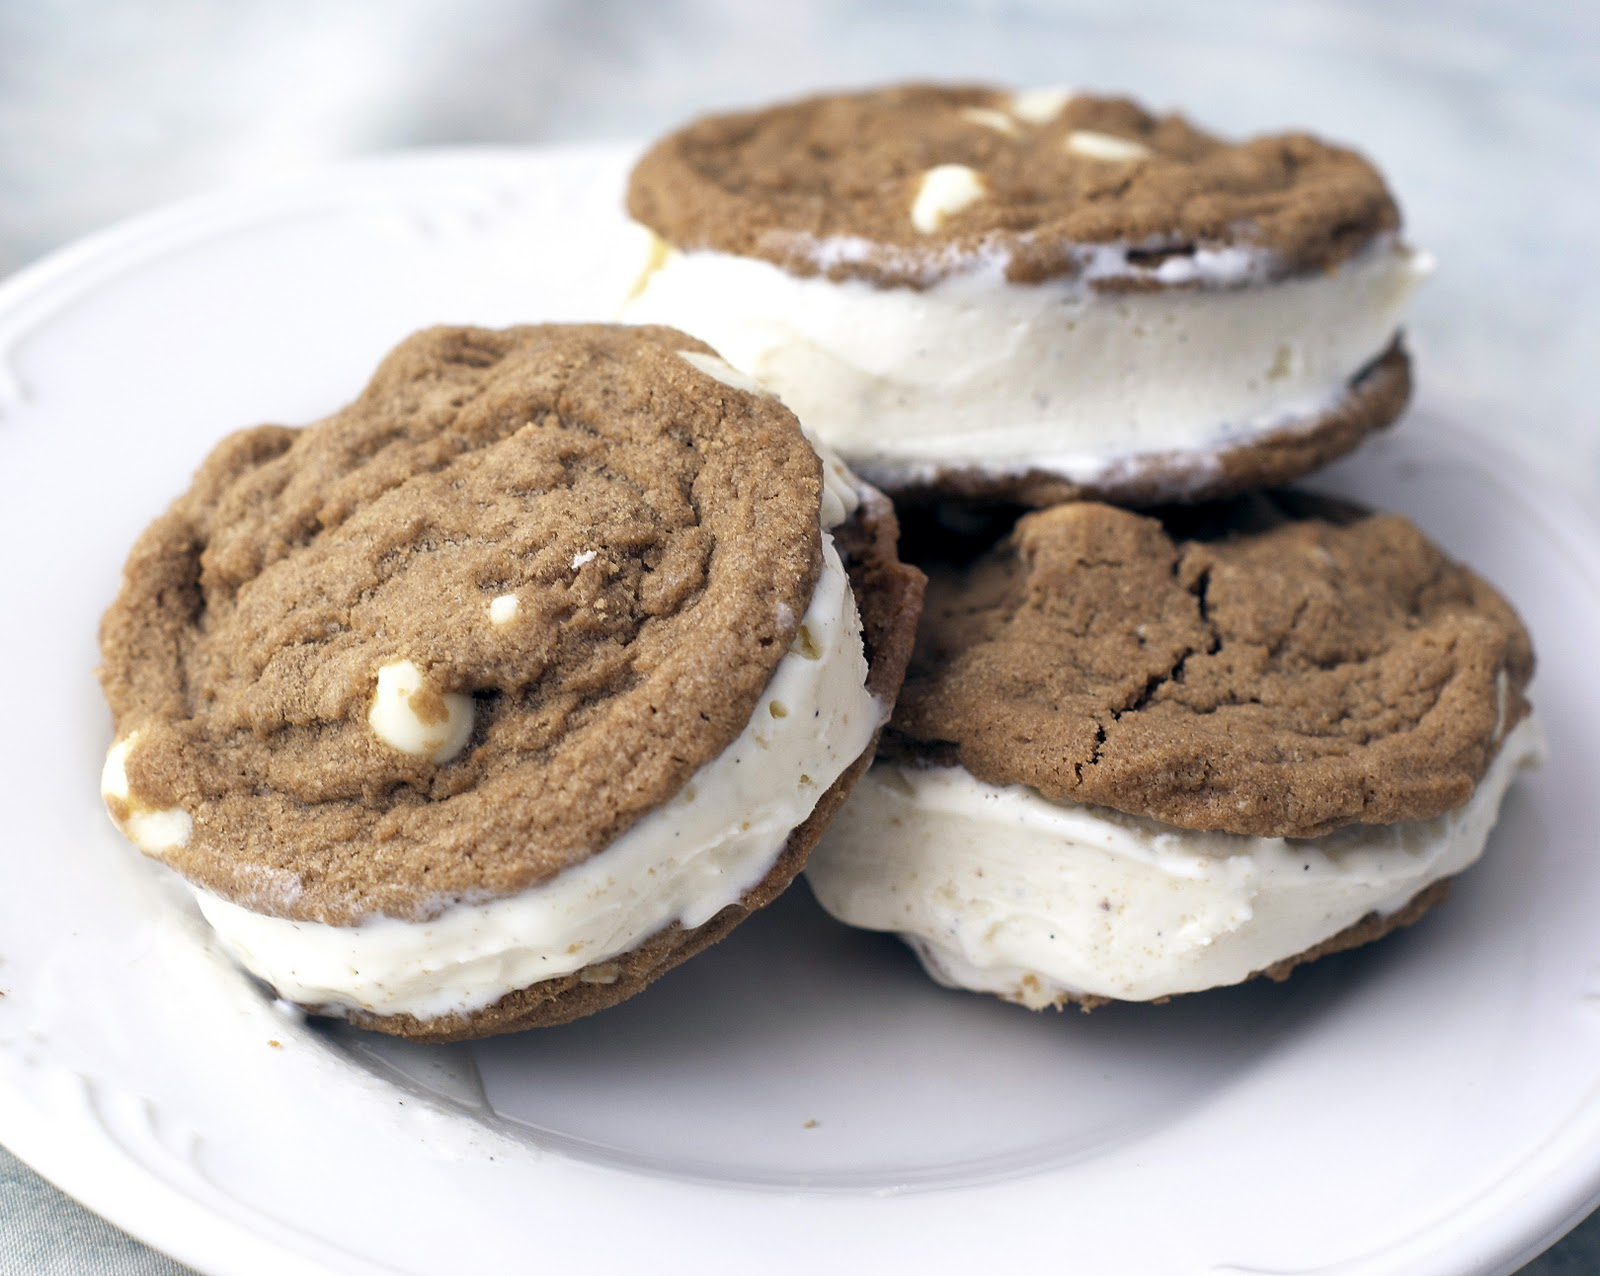 They also make some killer ice cream sandwiches.